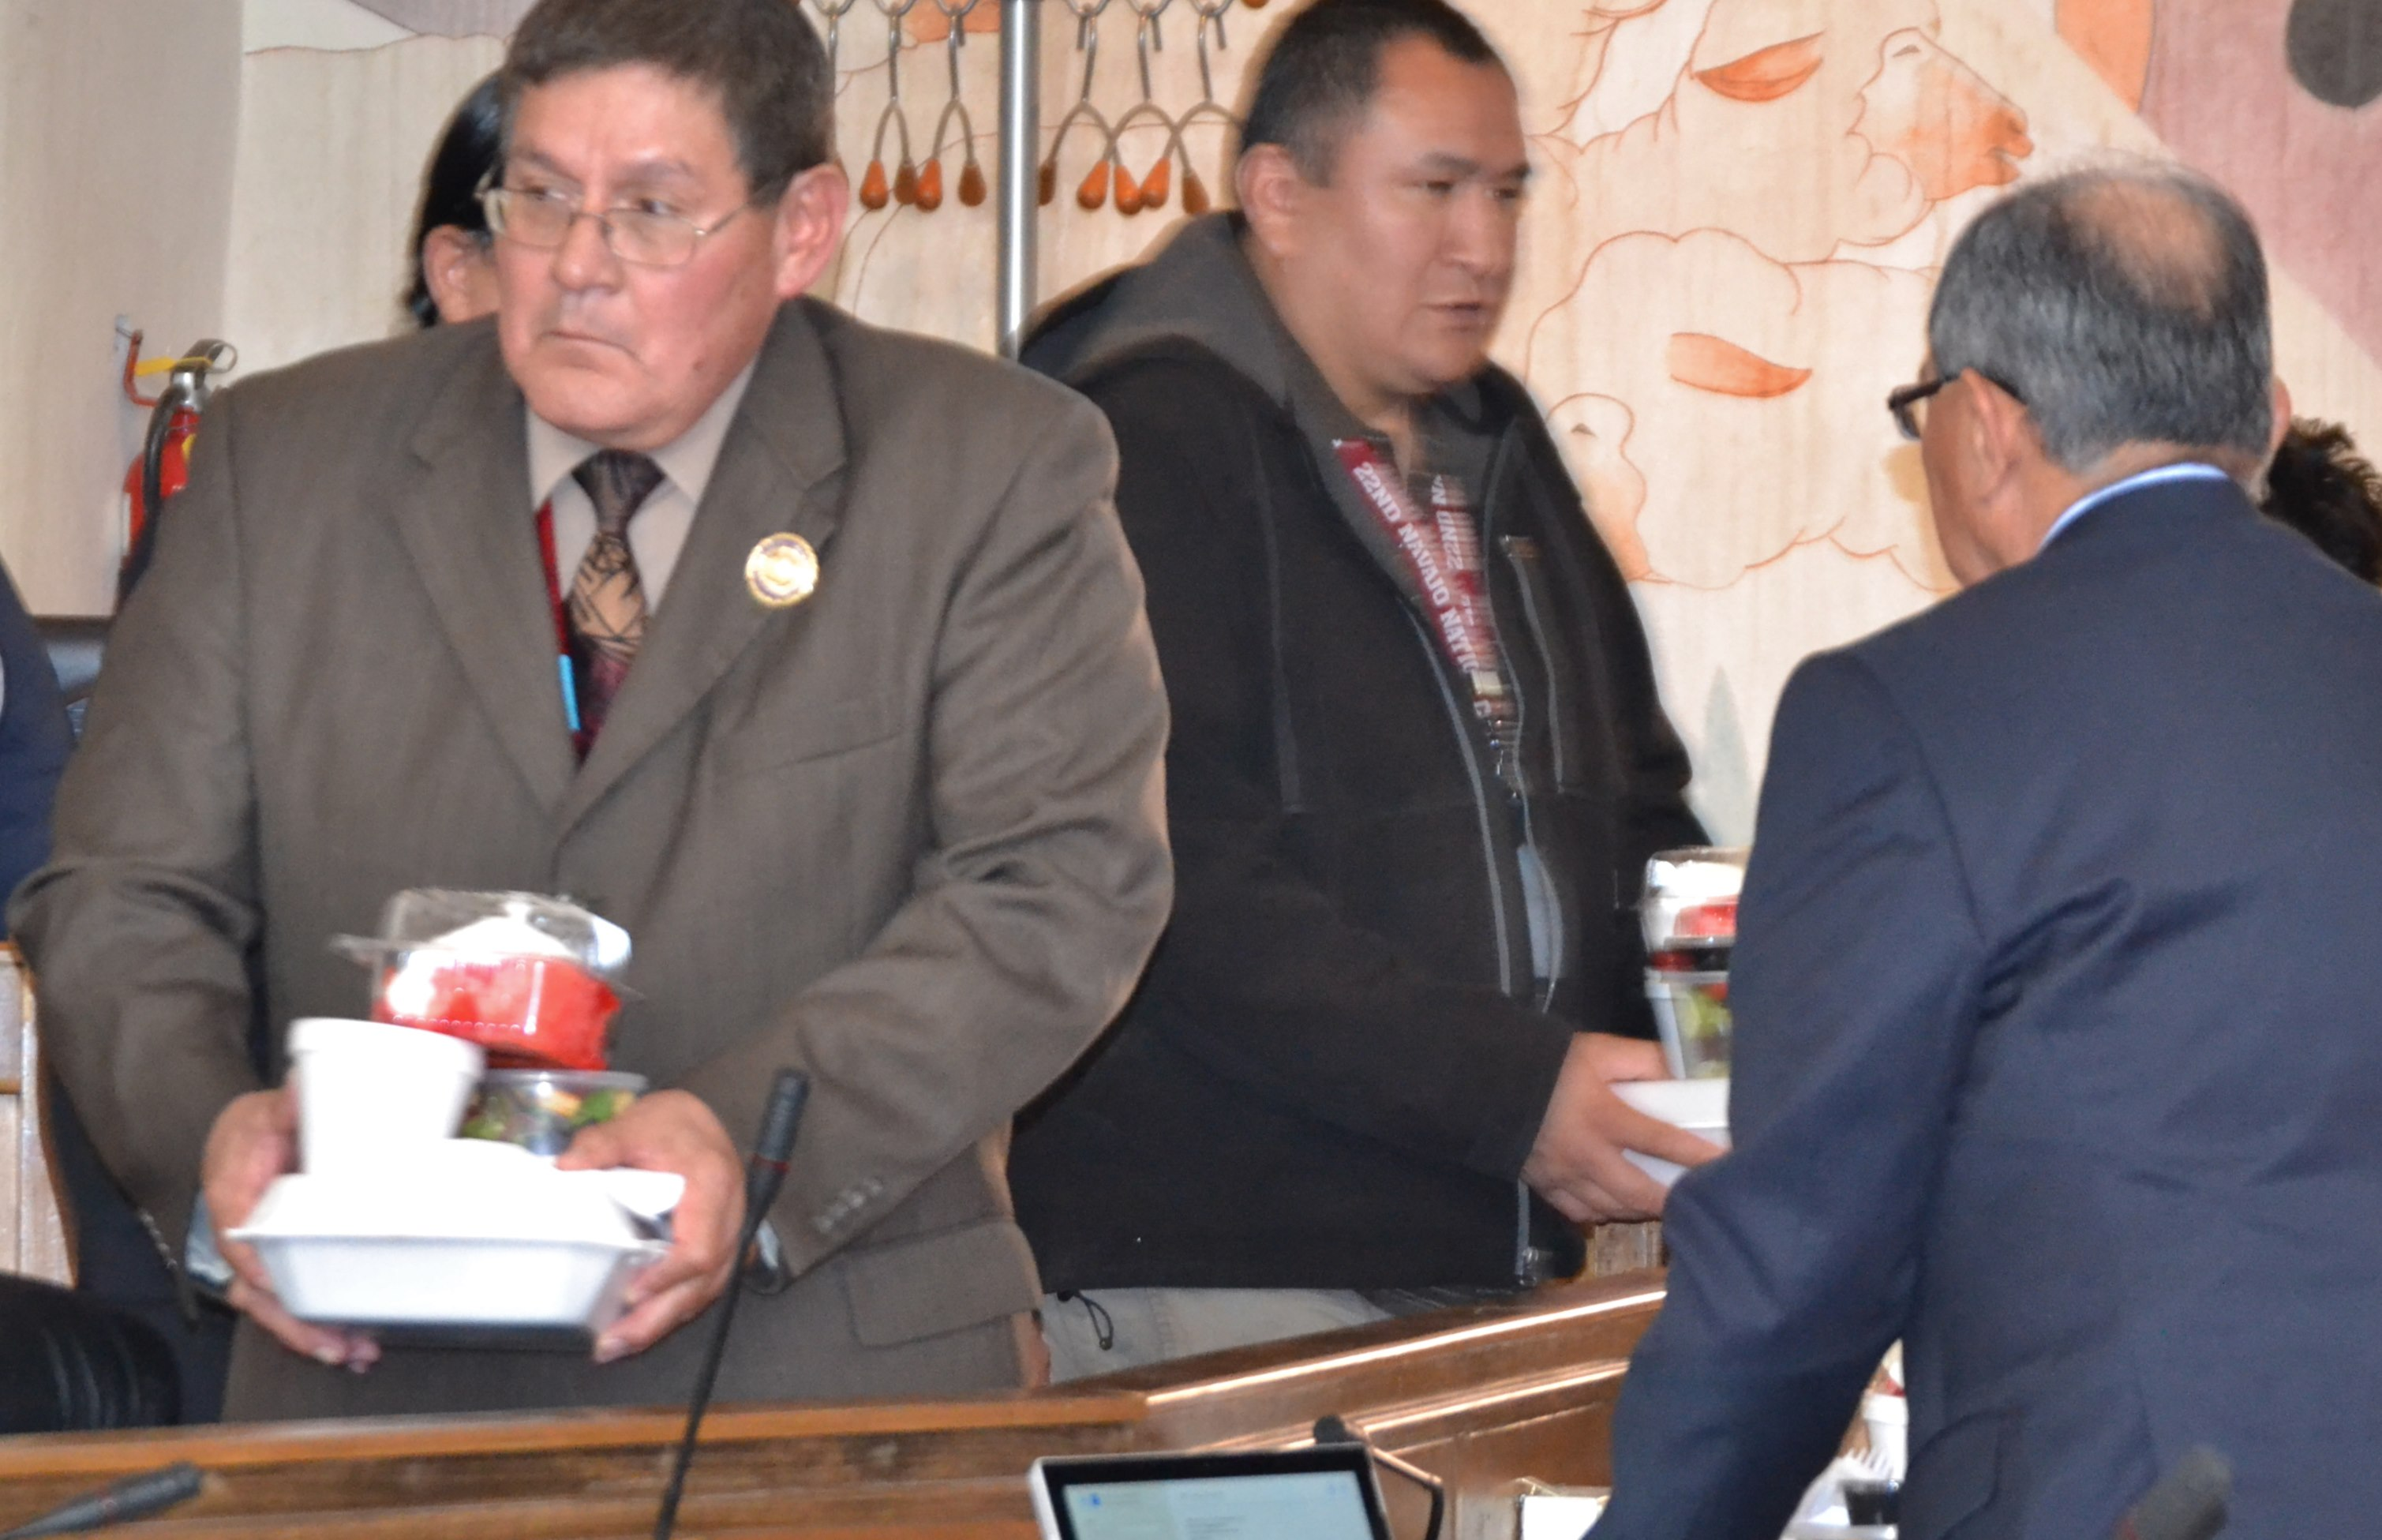 Navajo Council Speaker LoRenzo Bates shows his skills as a waiter during the Navajo Nation Council special session at the Council chambers in Window Rock, Ariz., on March 13, 2015. Photo by Marley Shebala. (Please provide proper credit when re-using photo.)